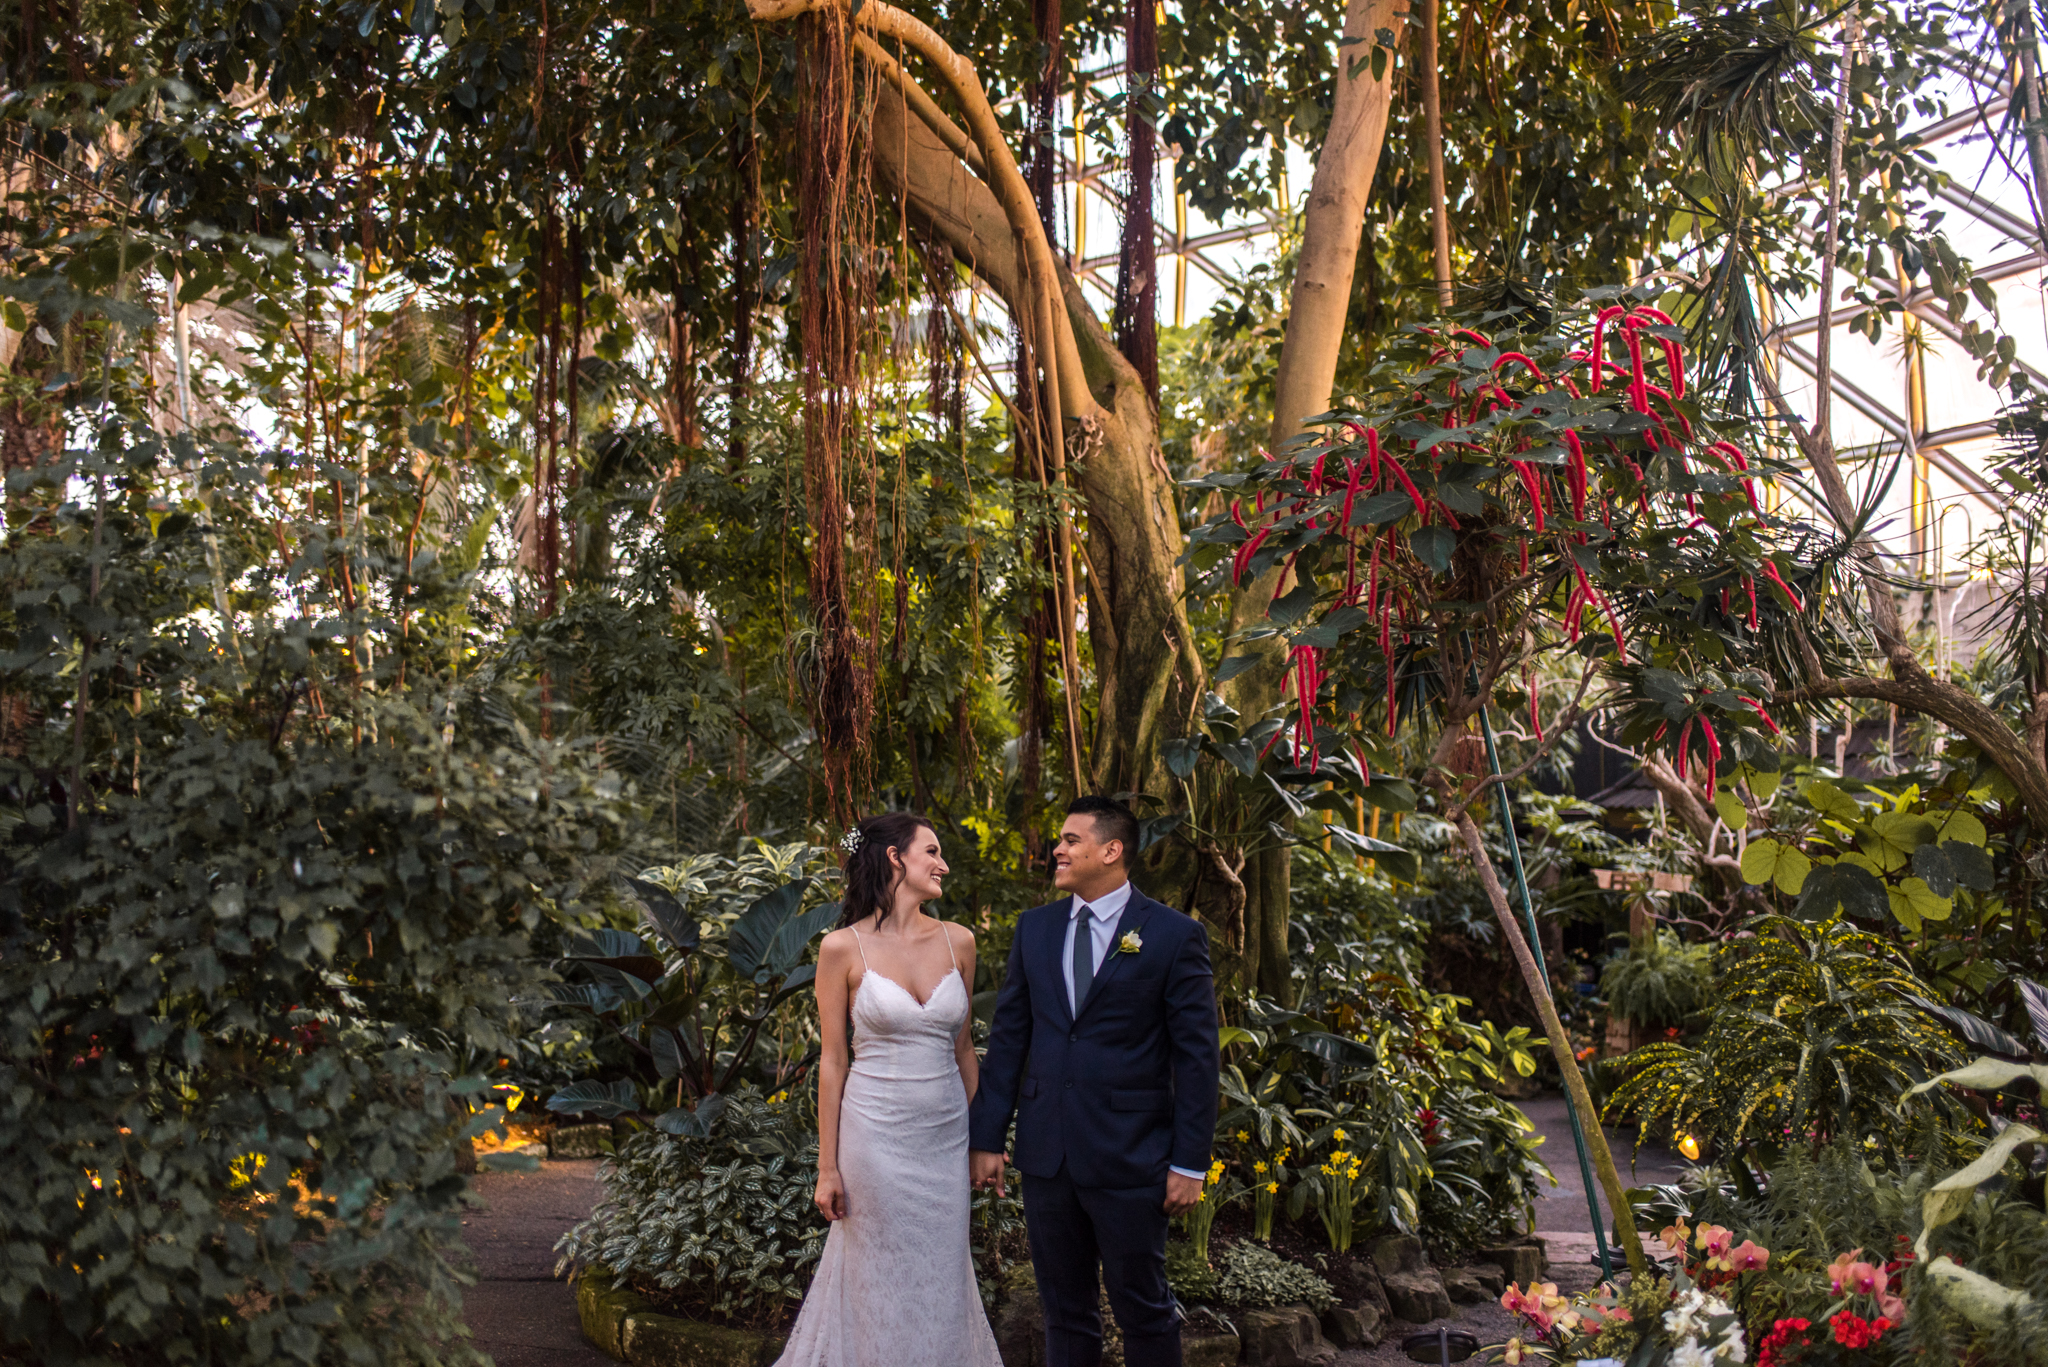 Queen Elizabeth Park Wedding Photographer-60.jpg